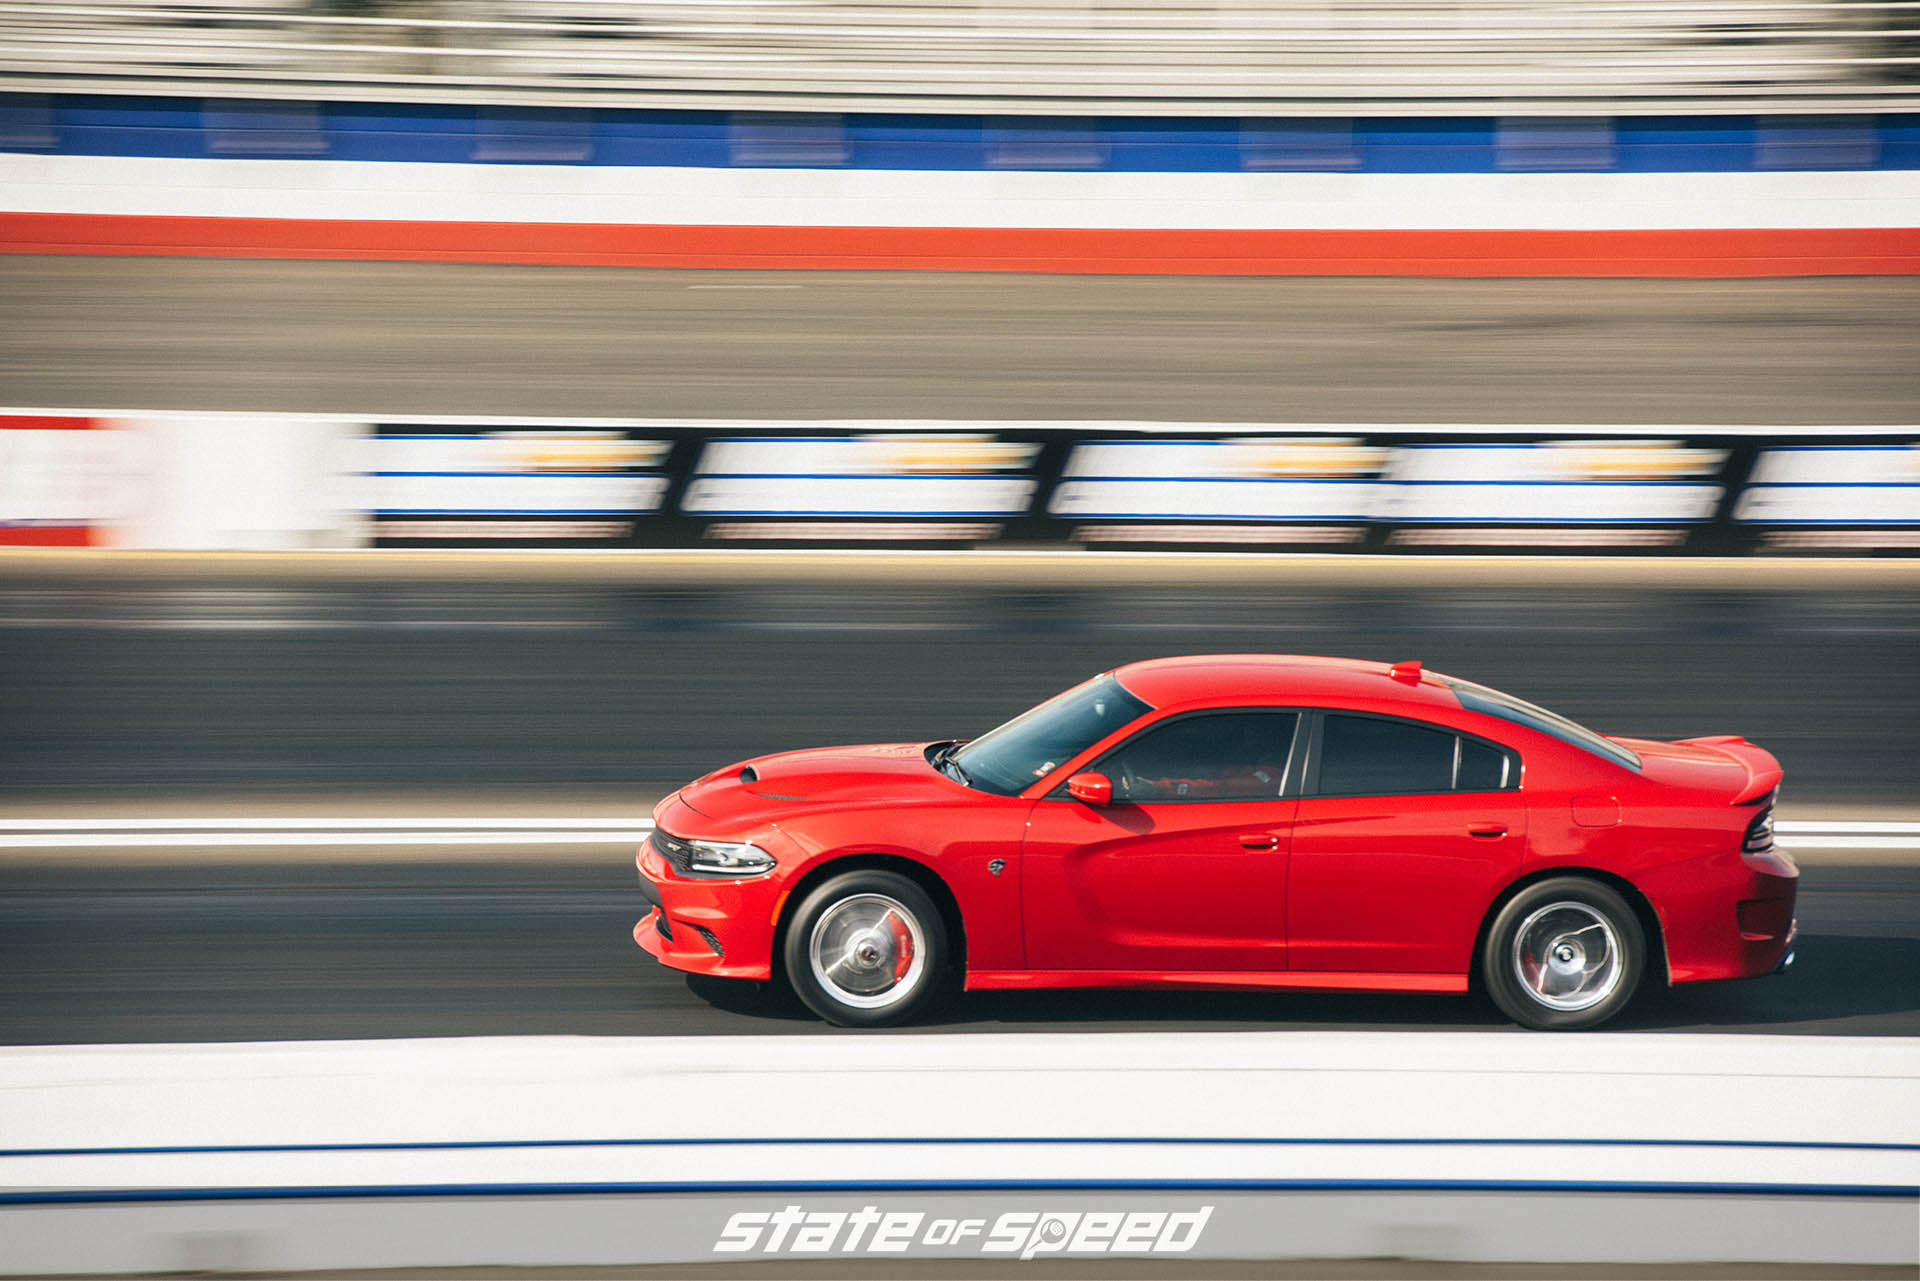 Dodge Charger Hellcat on the dragstrip